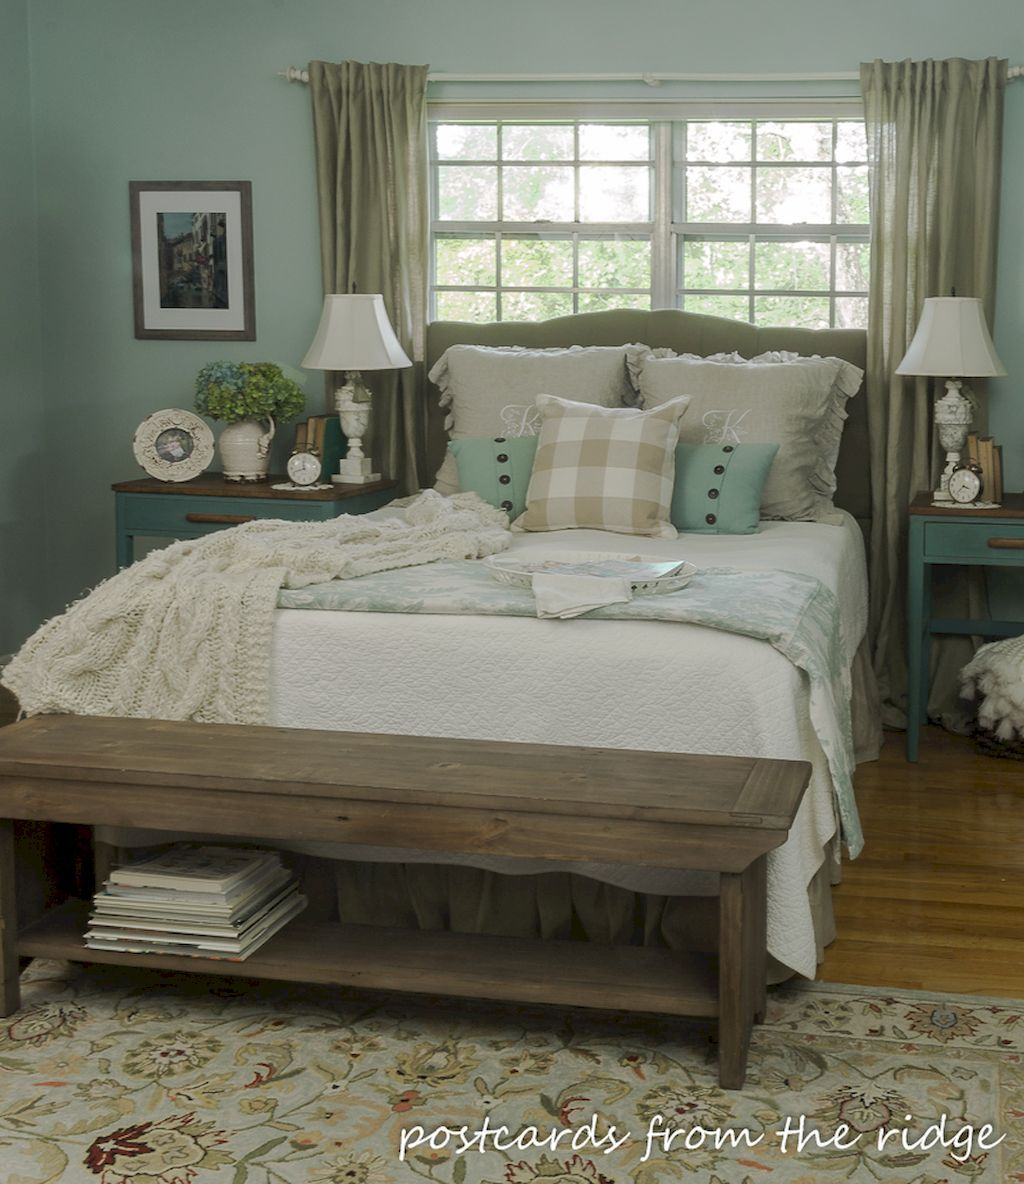 Old window above bed  adorable  rustic farmhouse style master bedroom ideas